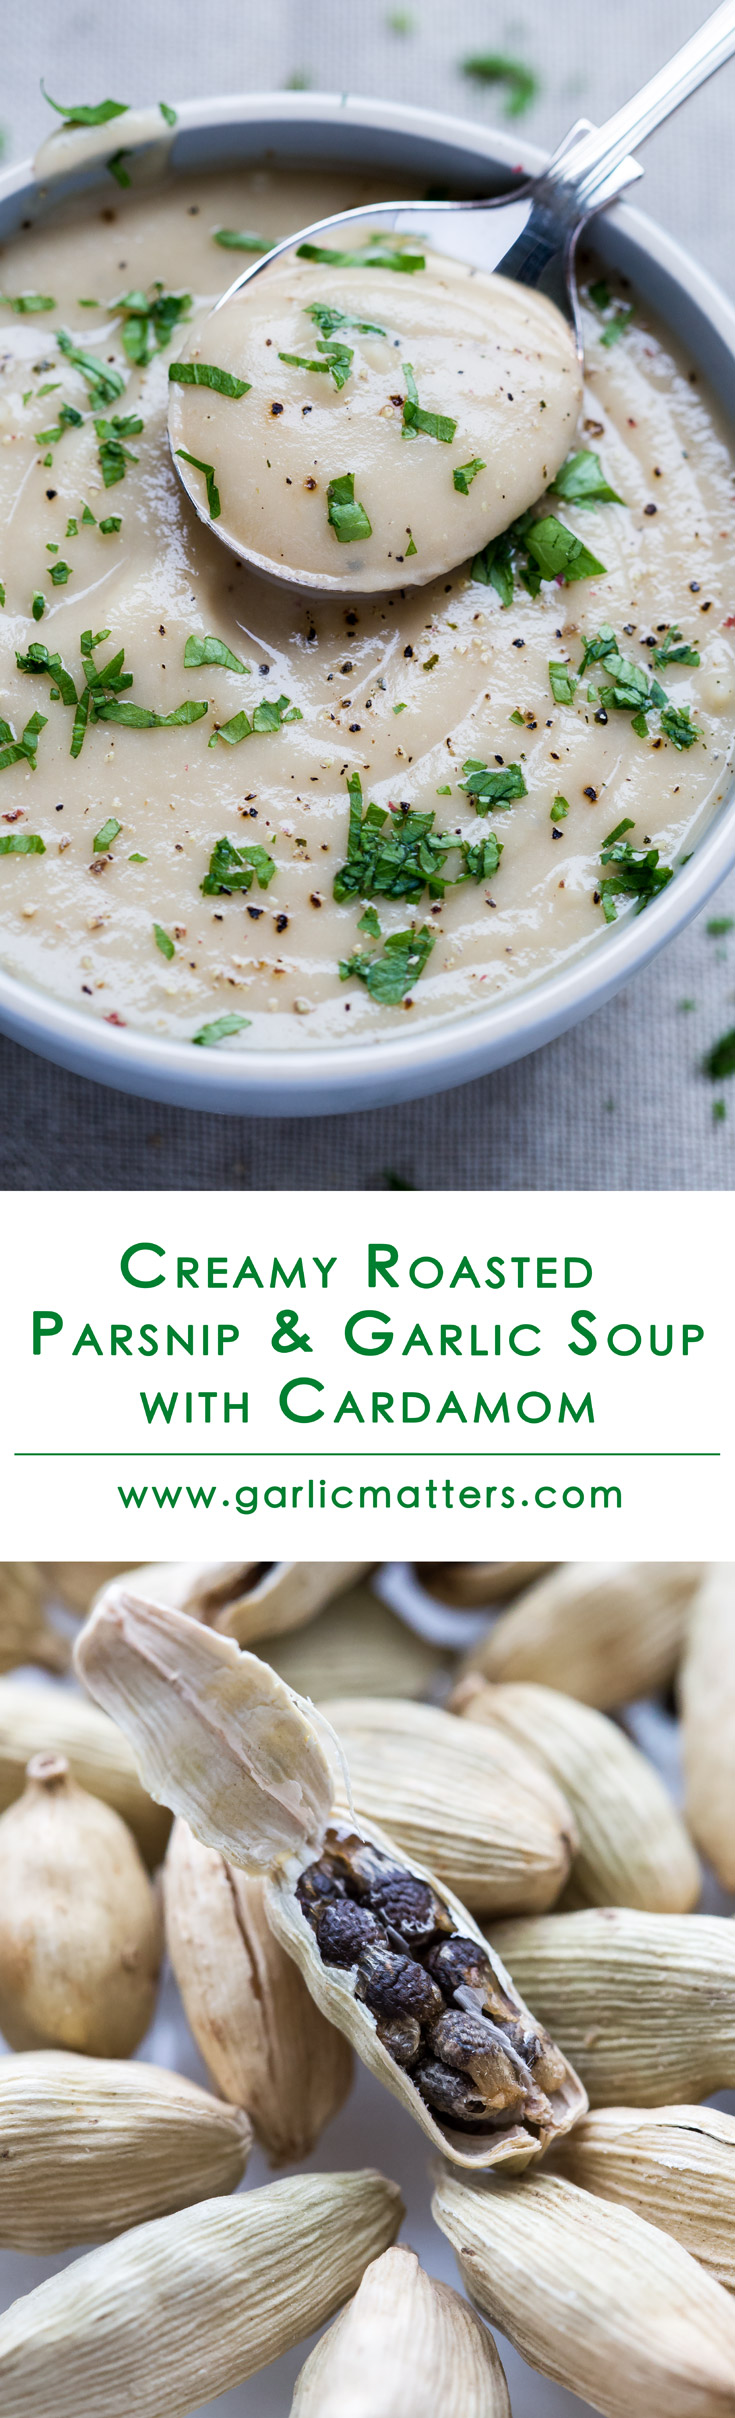 Creamy Roasted Parsnip and Garlic Soup with Cardamom is all about cozy and warming comfort of rich and velvety smooth flavours. Naturally sweet, roasted parsnips and garlic mingle together really nicely and fragrant cardamom ads a wonderful, complementing twist. Delicious, easy, vegan recipe (absolutely loved by non-vegans!!) with only 5 ingredients. Ready in 1h.